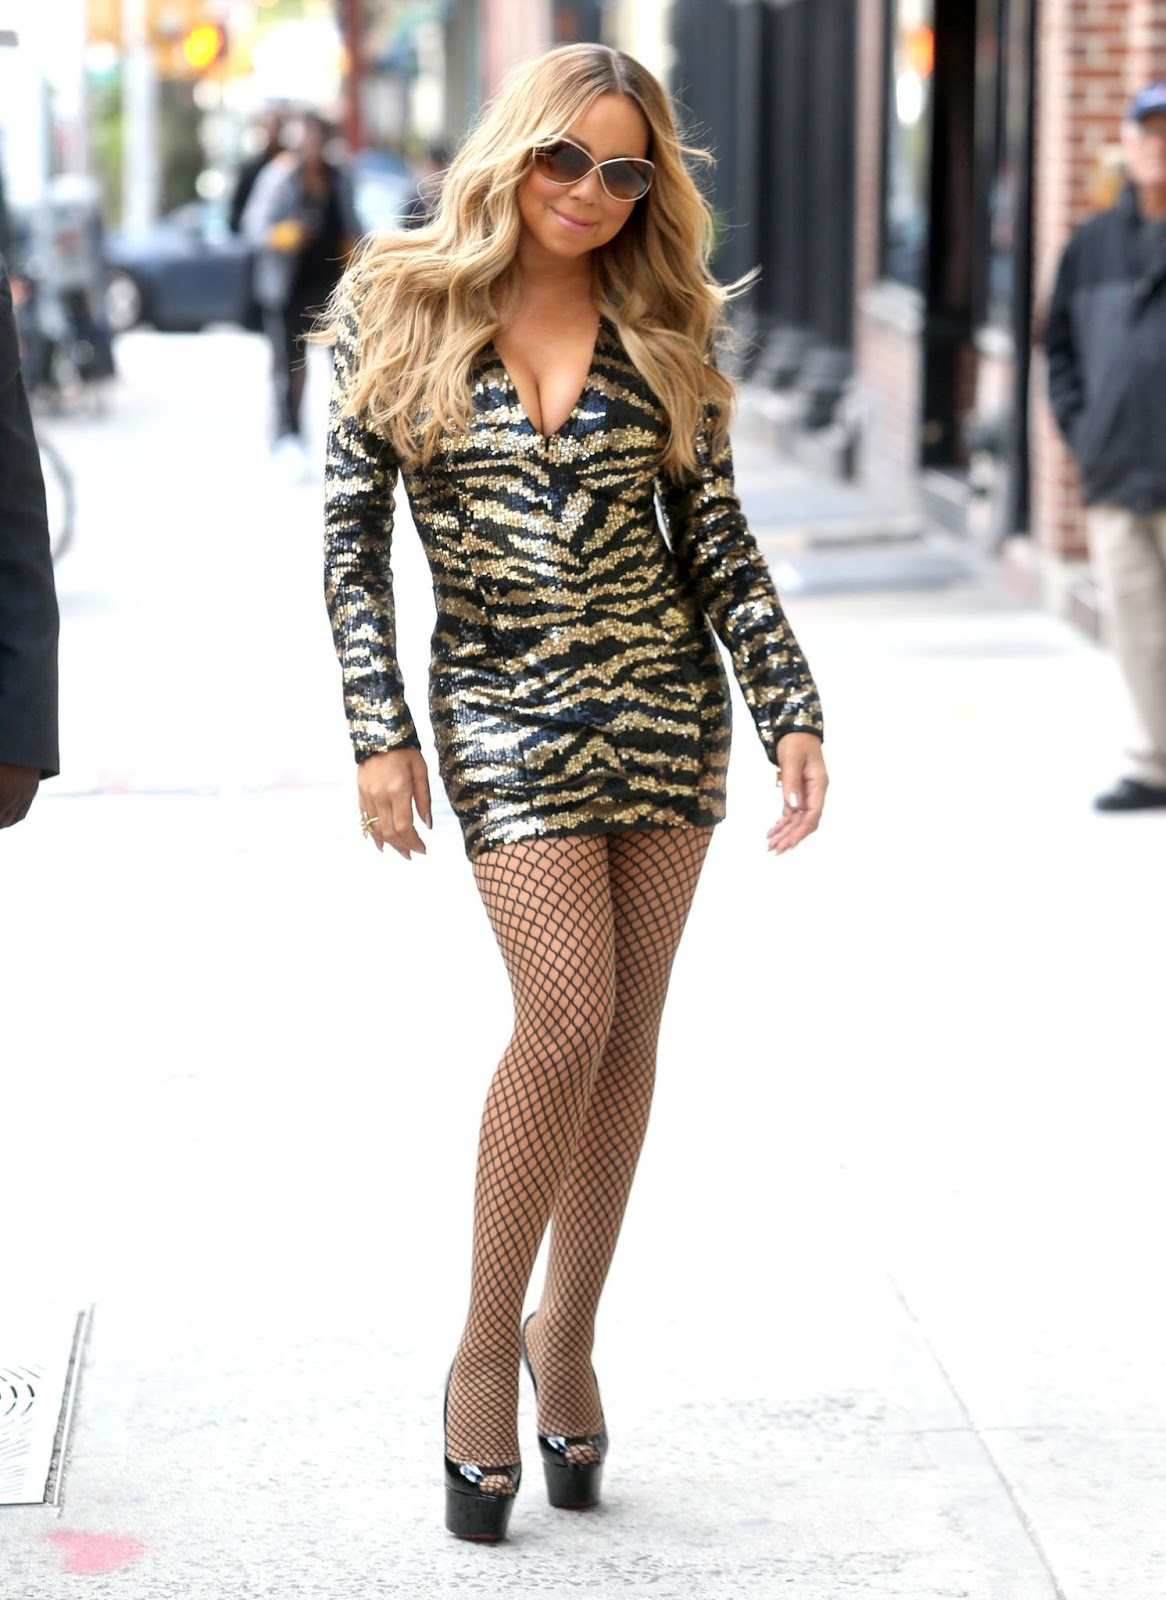 Mariah Carey in New York - Photo Mariah Carey 2016